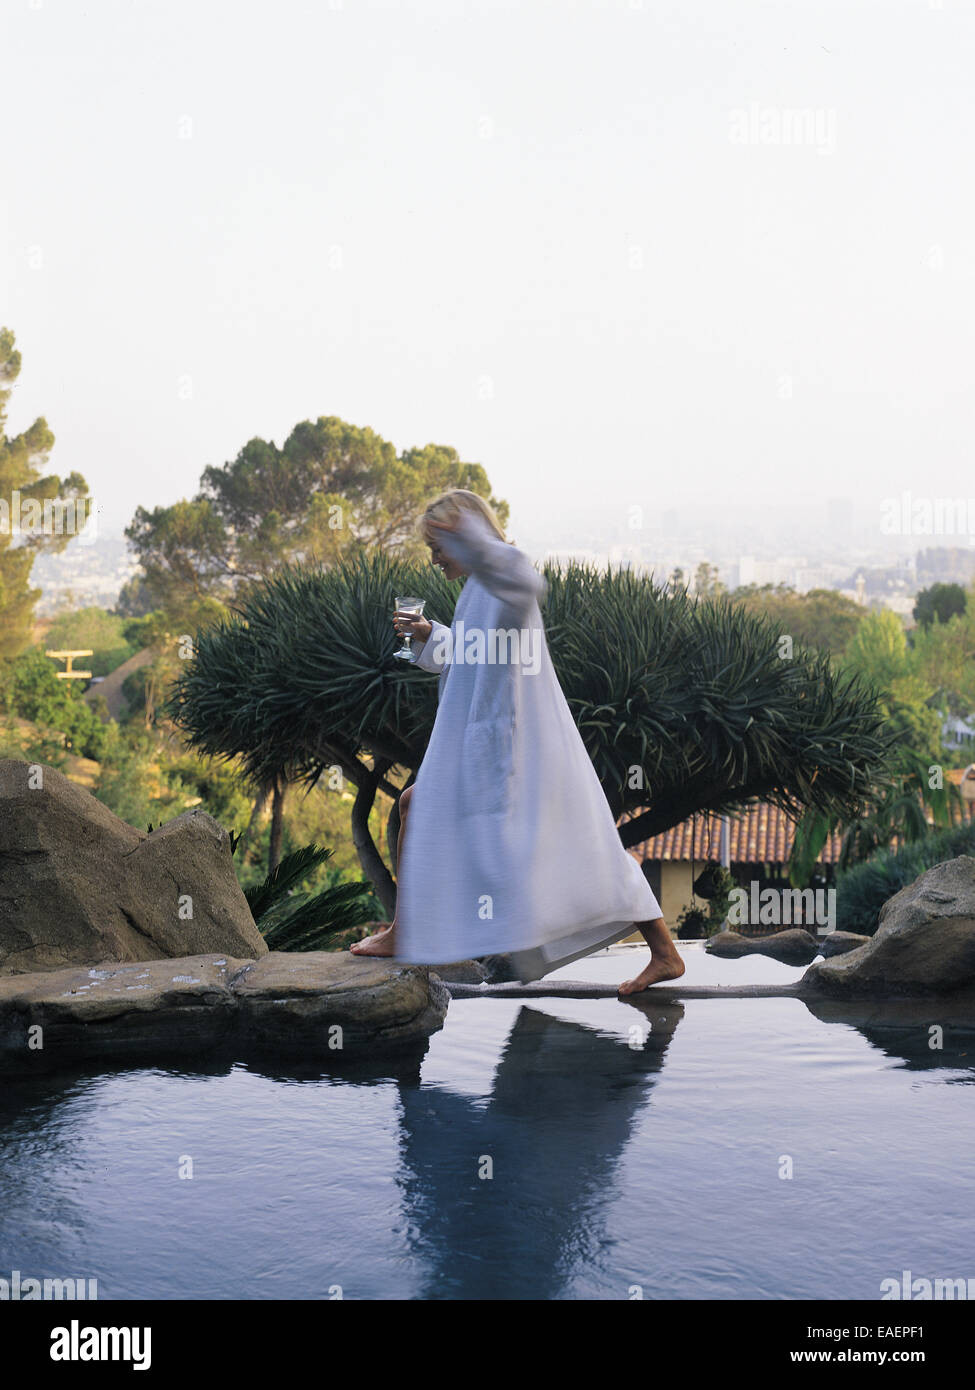 woman in white terry clothe robe walking across a swimming pool with a glass of wine in hand. - Stock Image